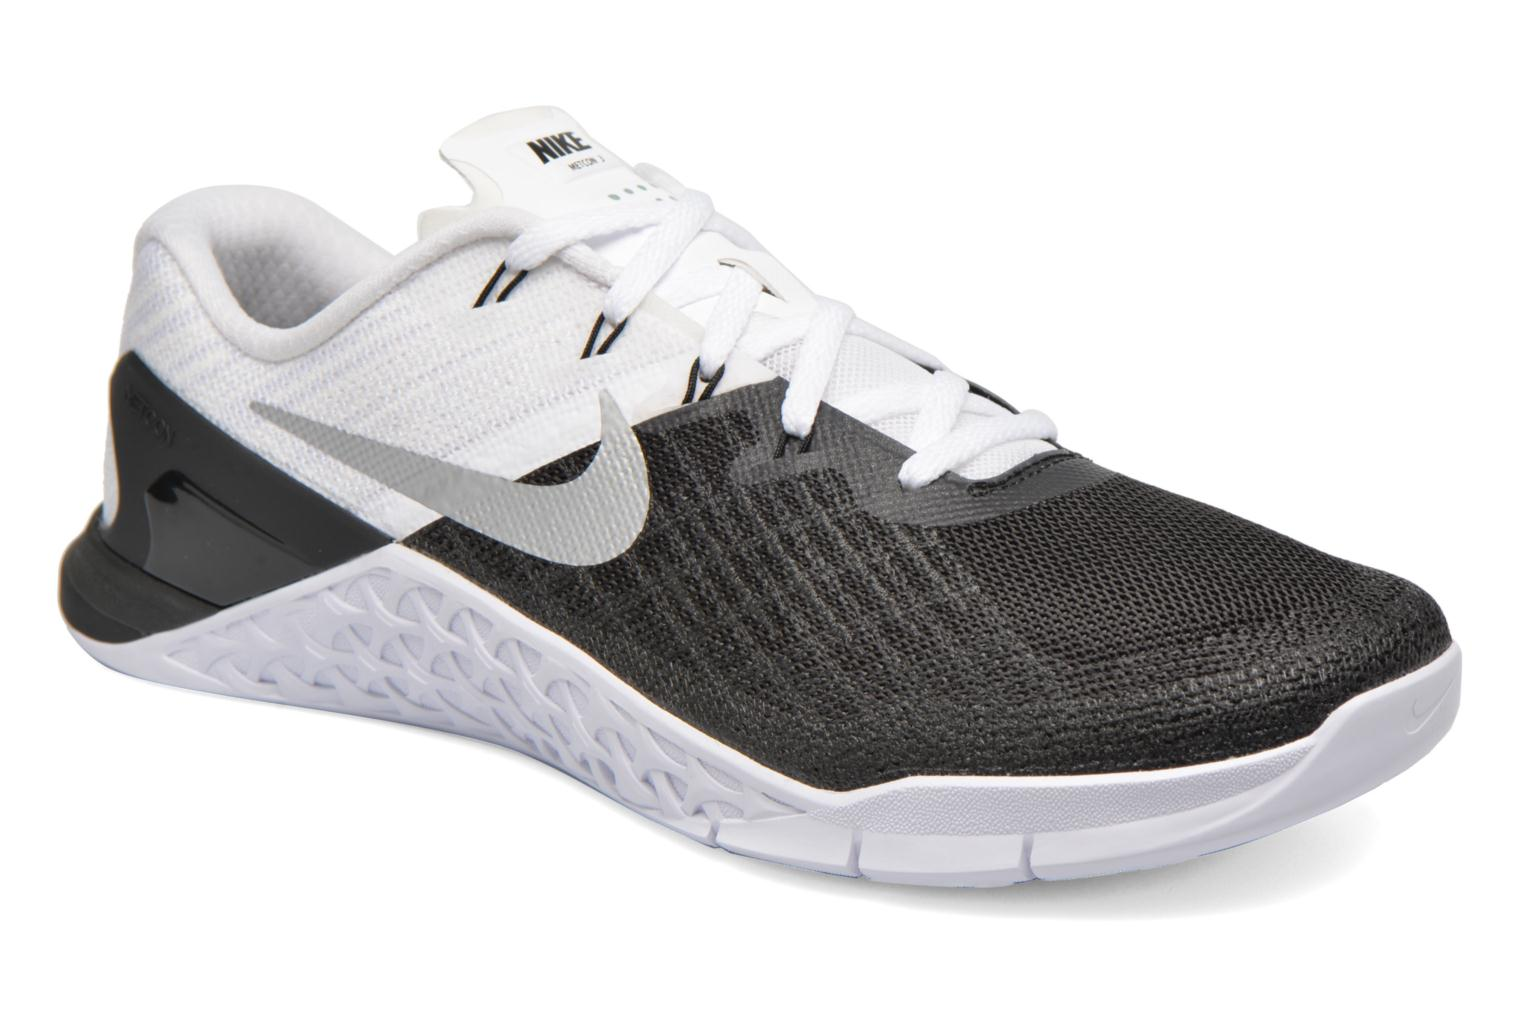 Nike Metcon 3 Black/white-Metallic Silver